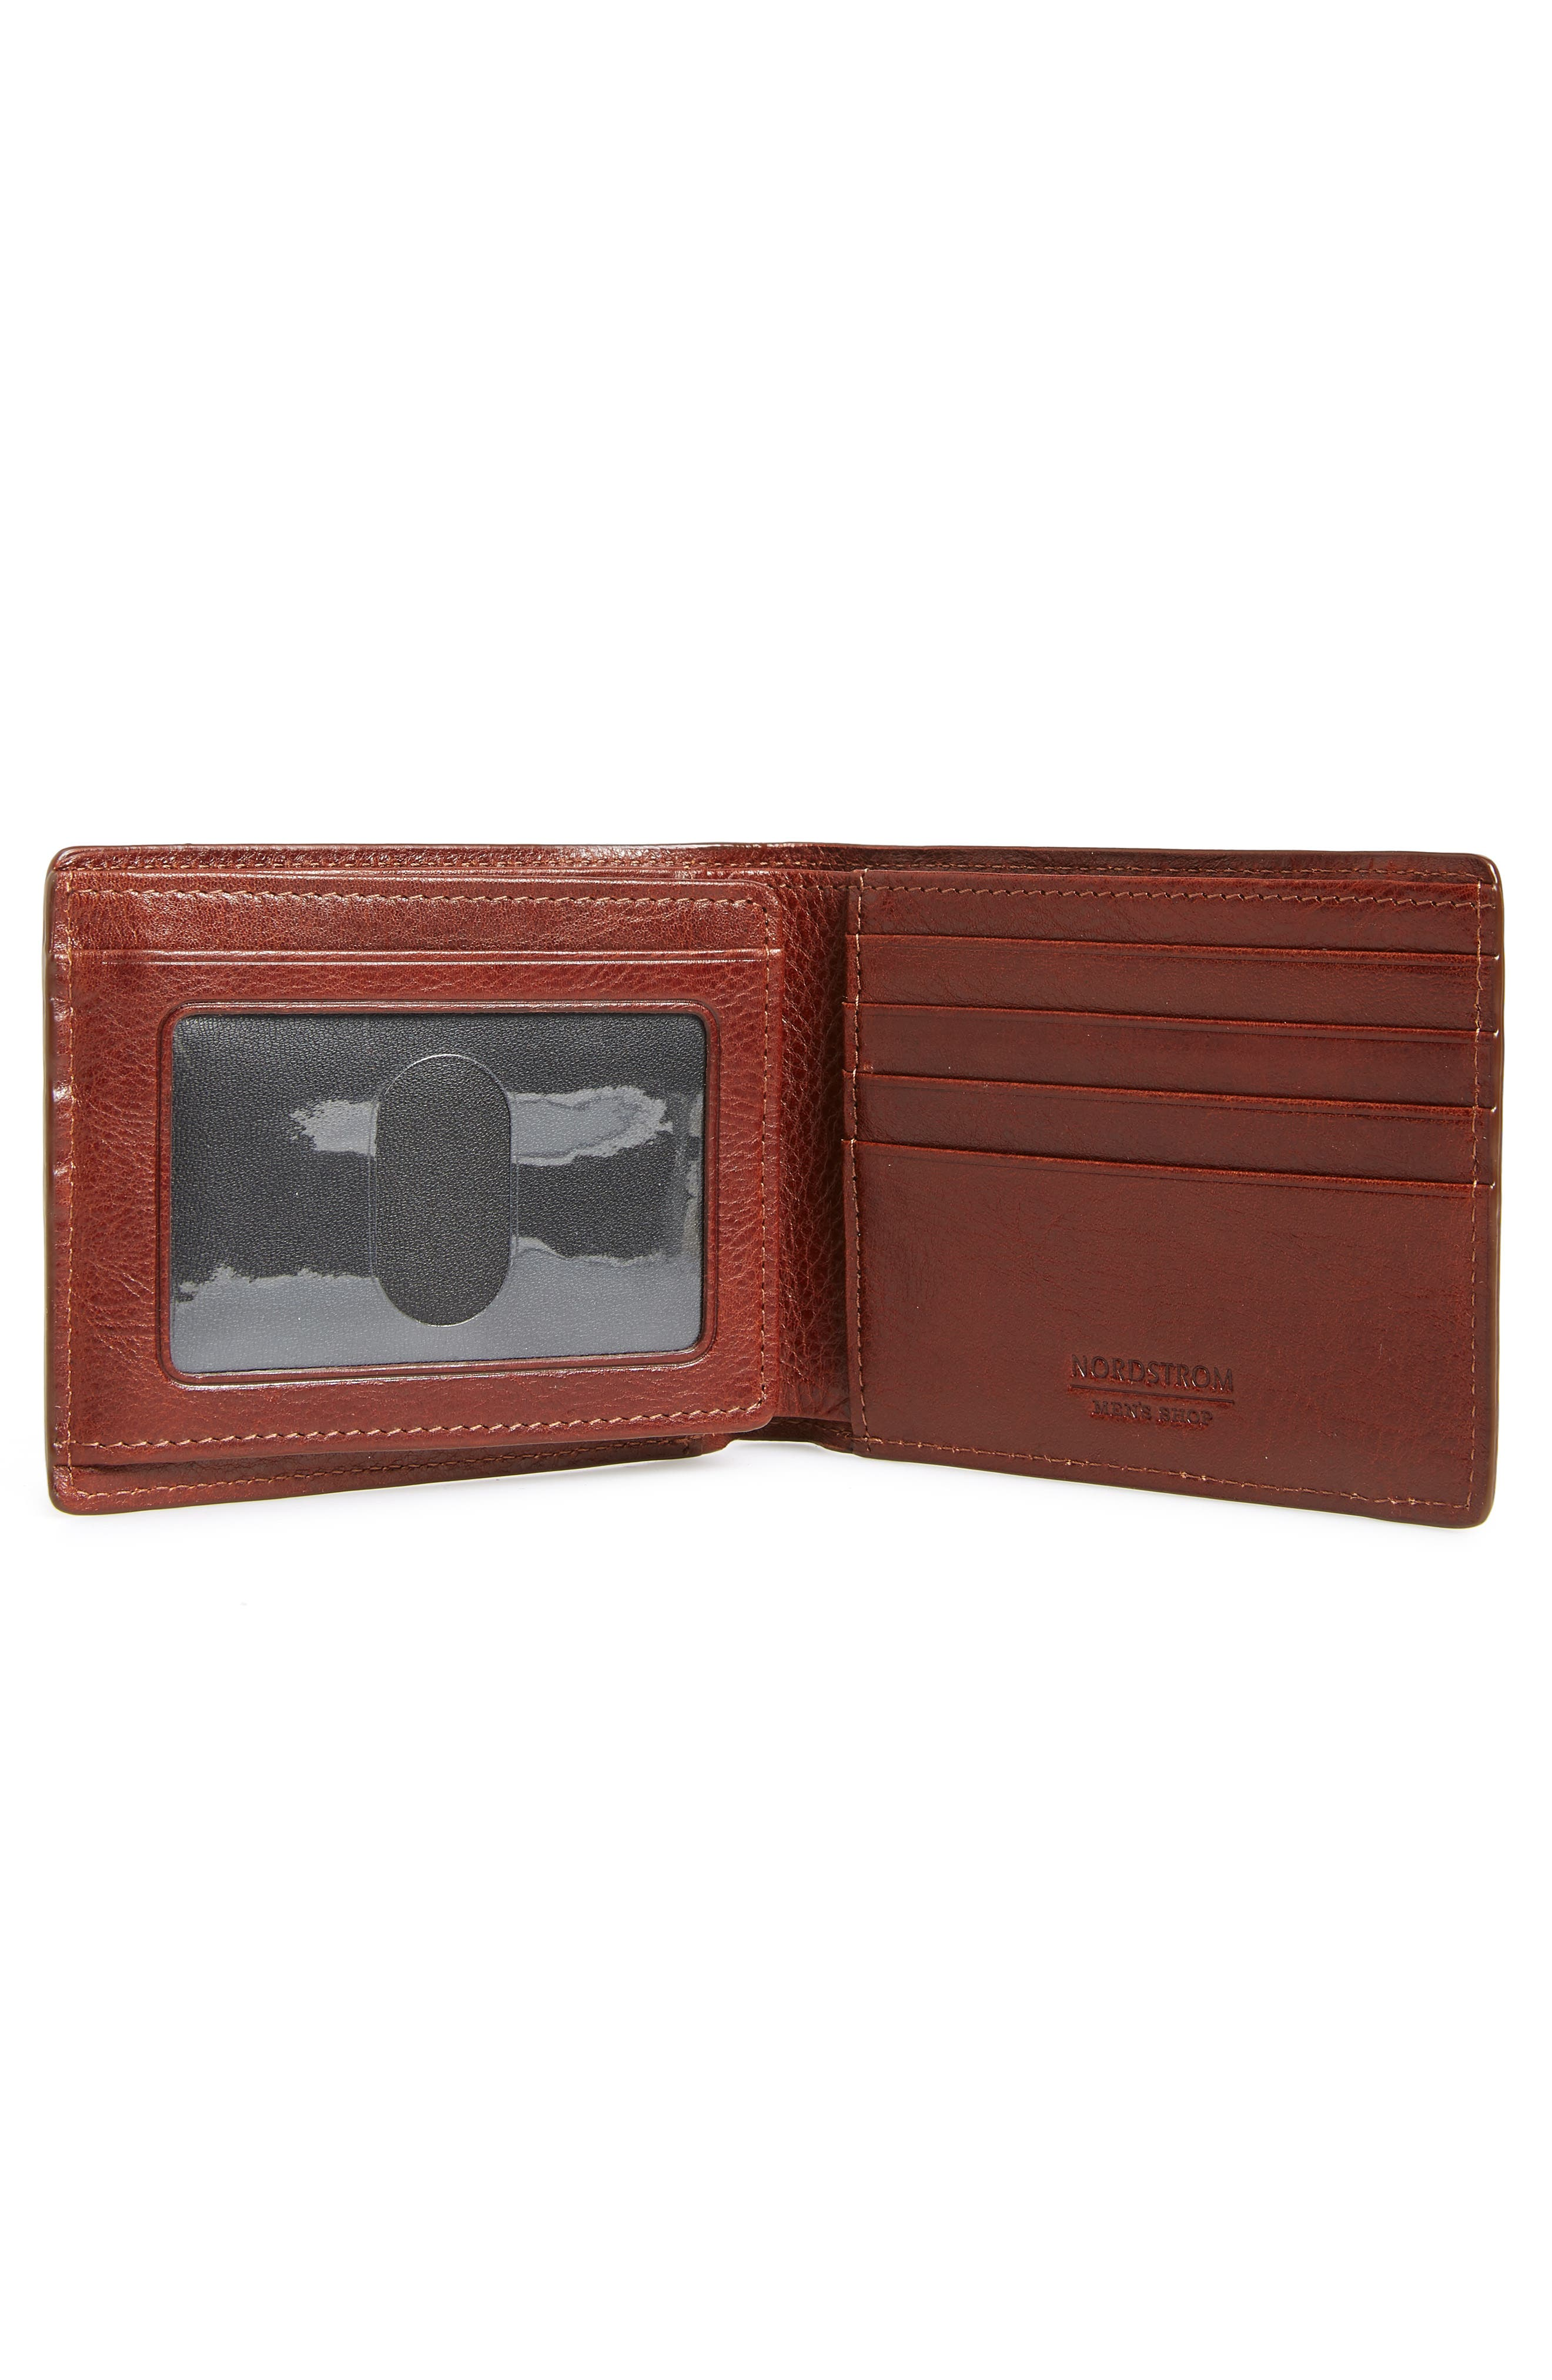 Richmond Leather Wallet,                             Alternate thumbnail 2, color,                             BROWN HENNA